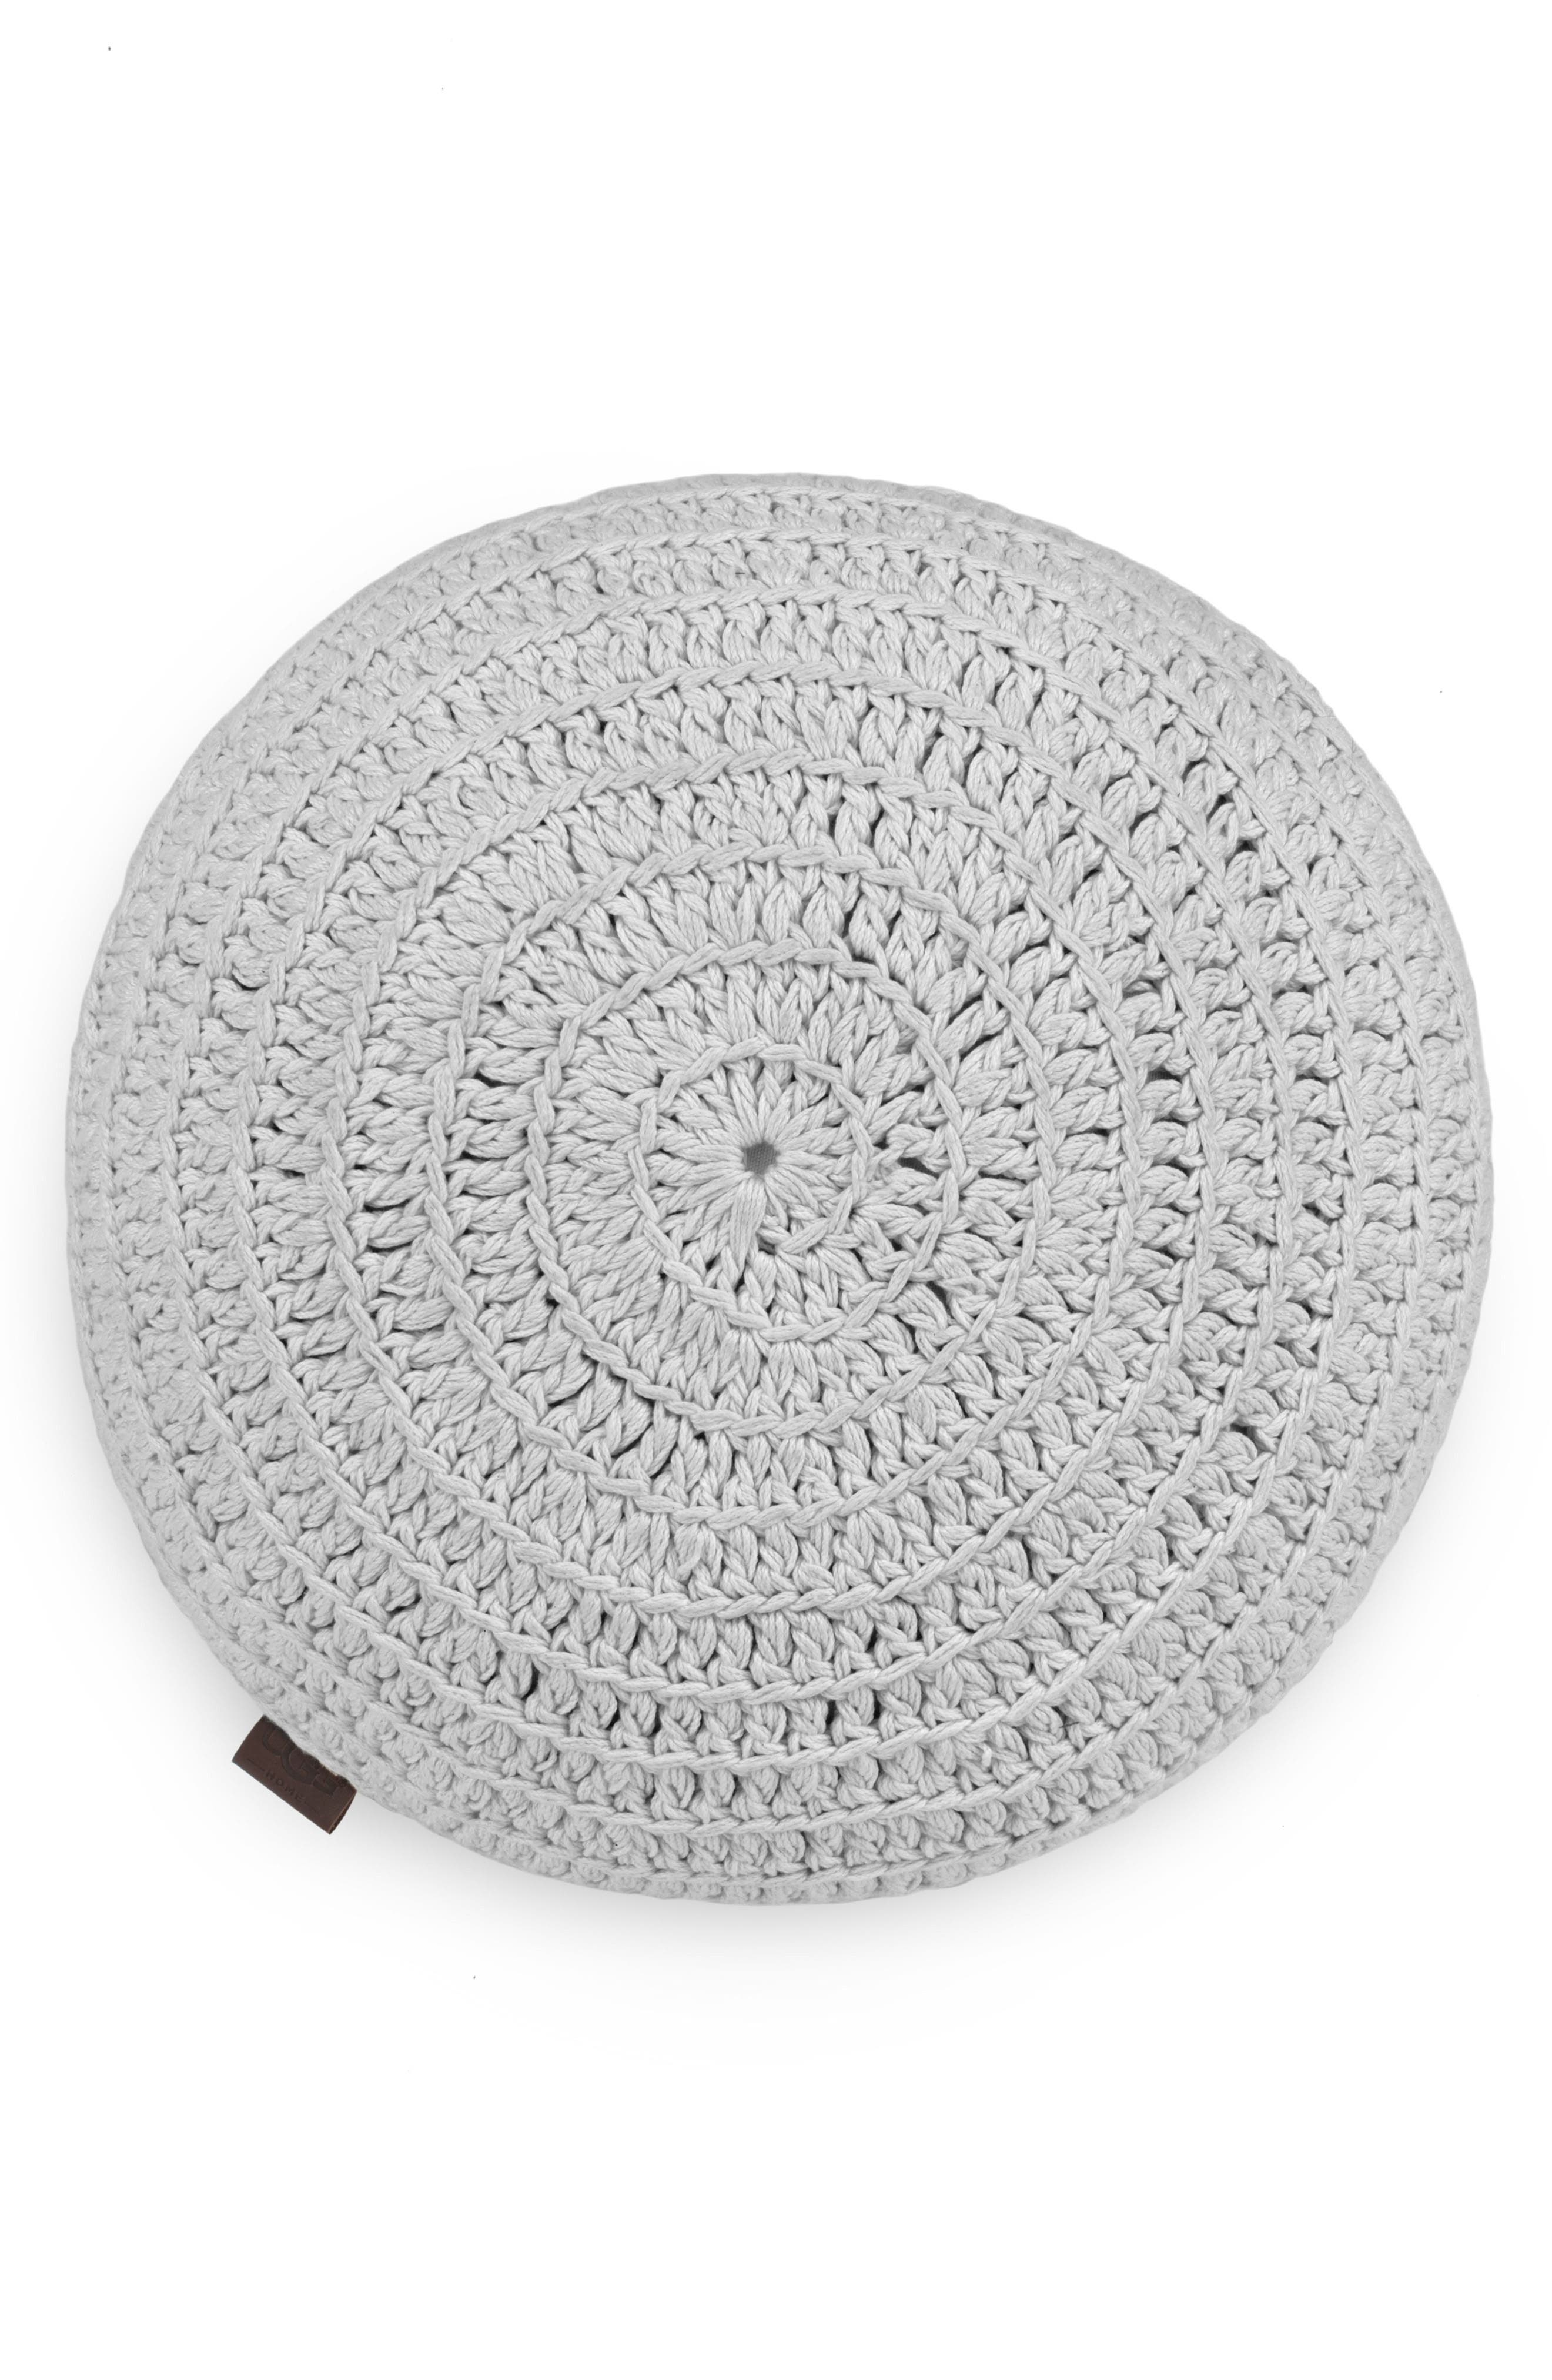 Main Image - UGG® Round Crochet Accent Pillow